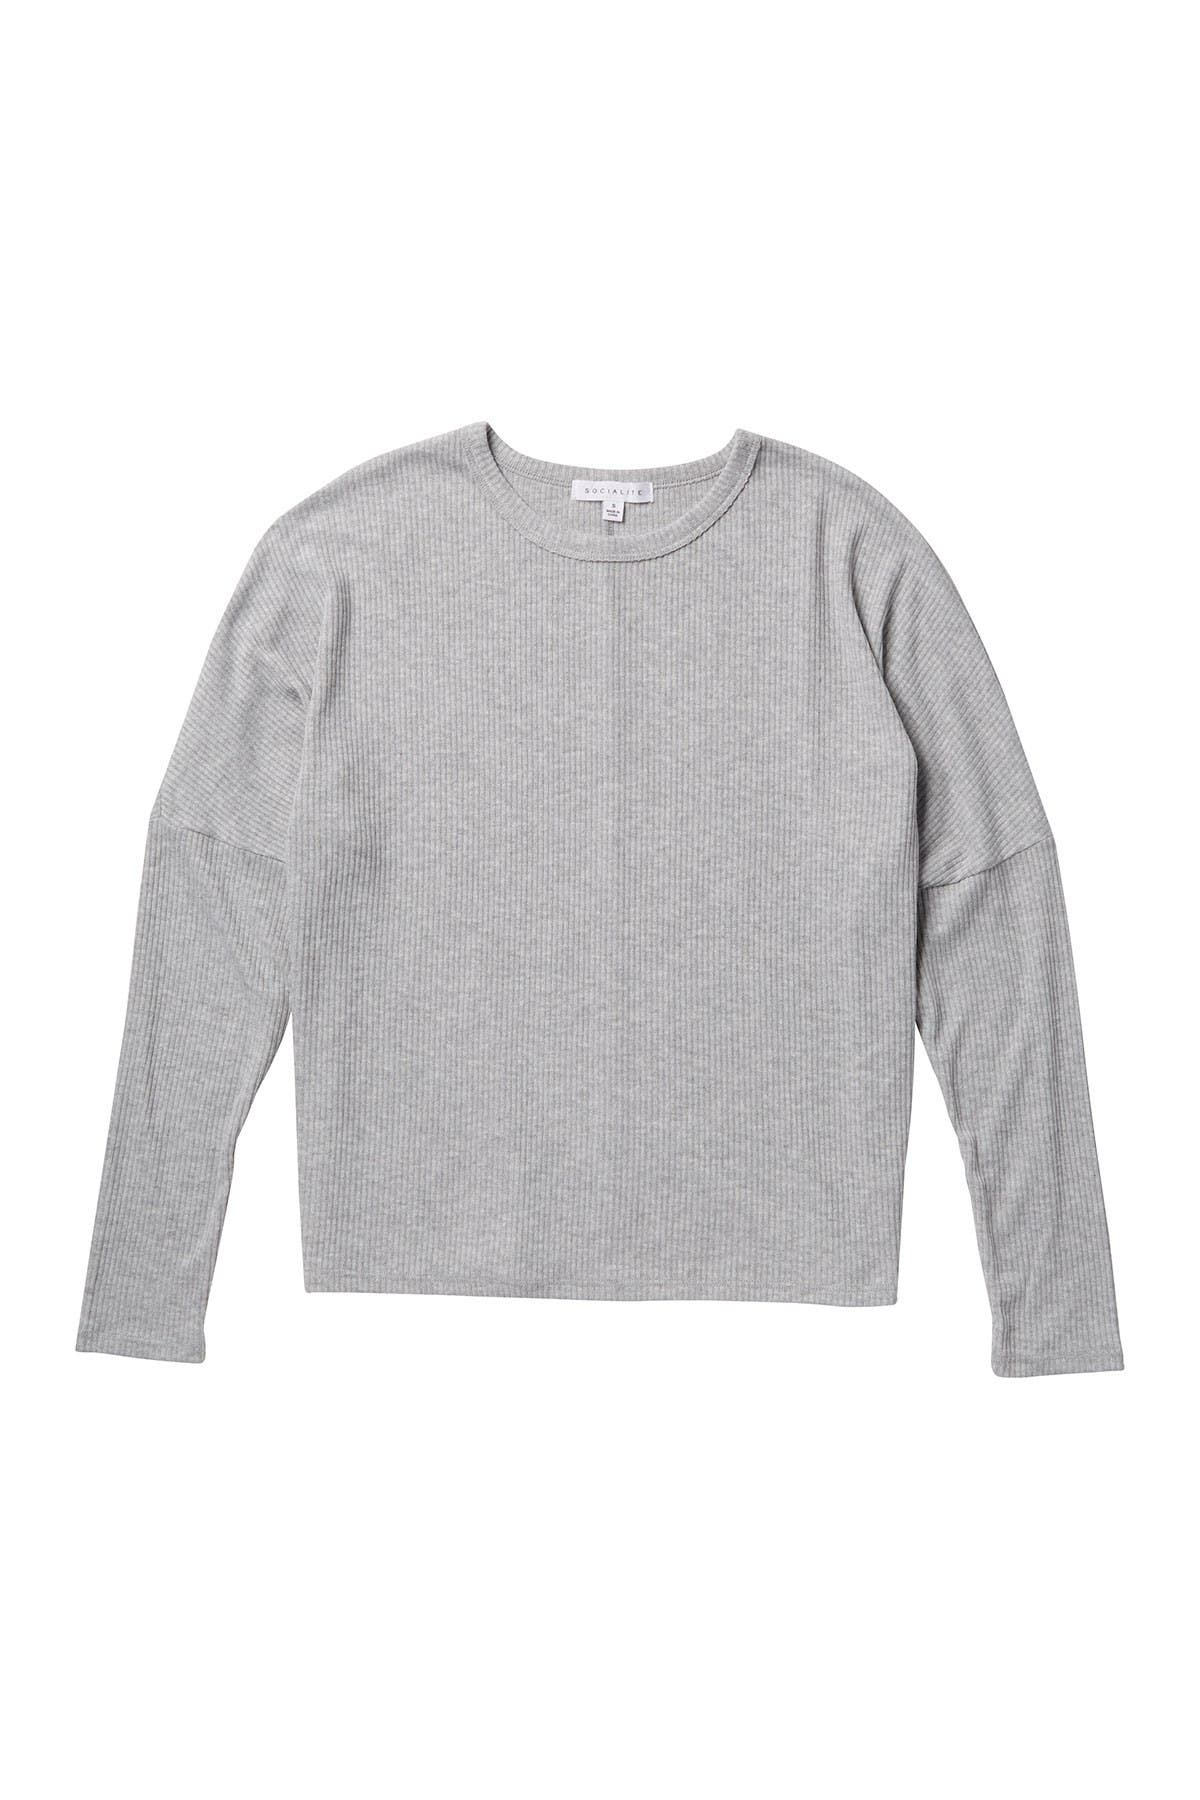 Image of Socialite Crew Neck Dolman Sleeve Ribbed Sweater